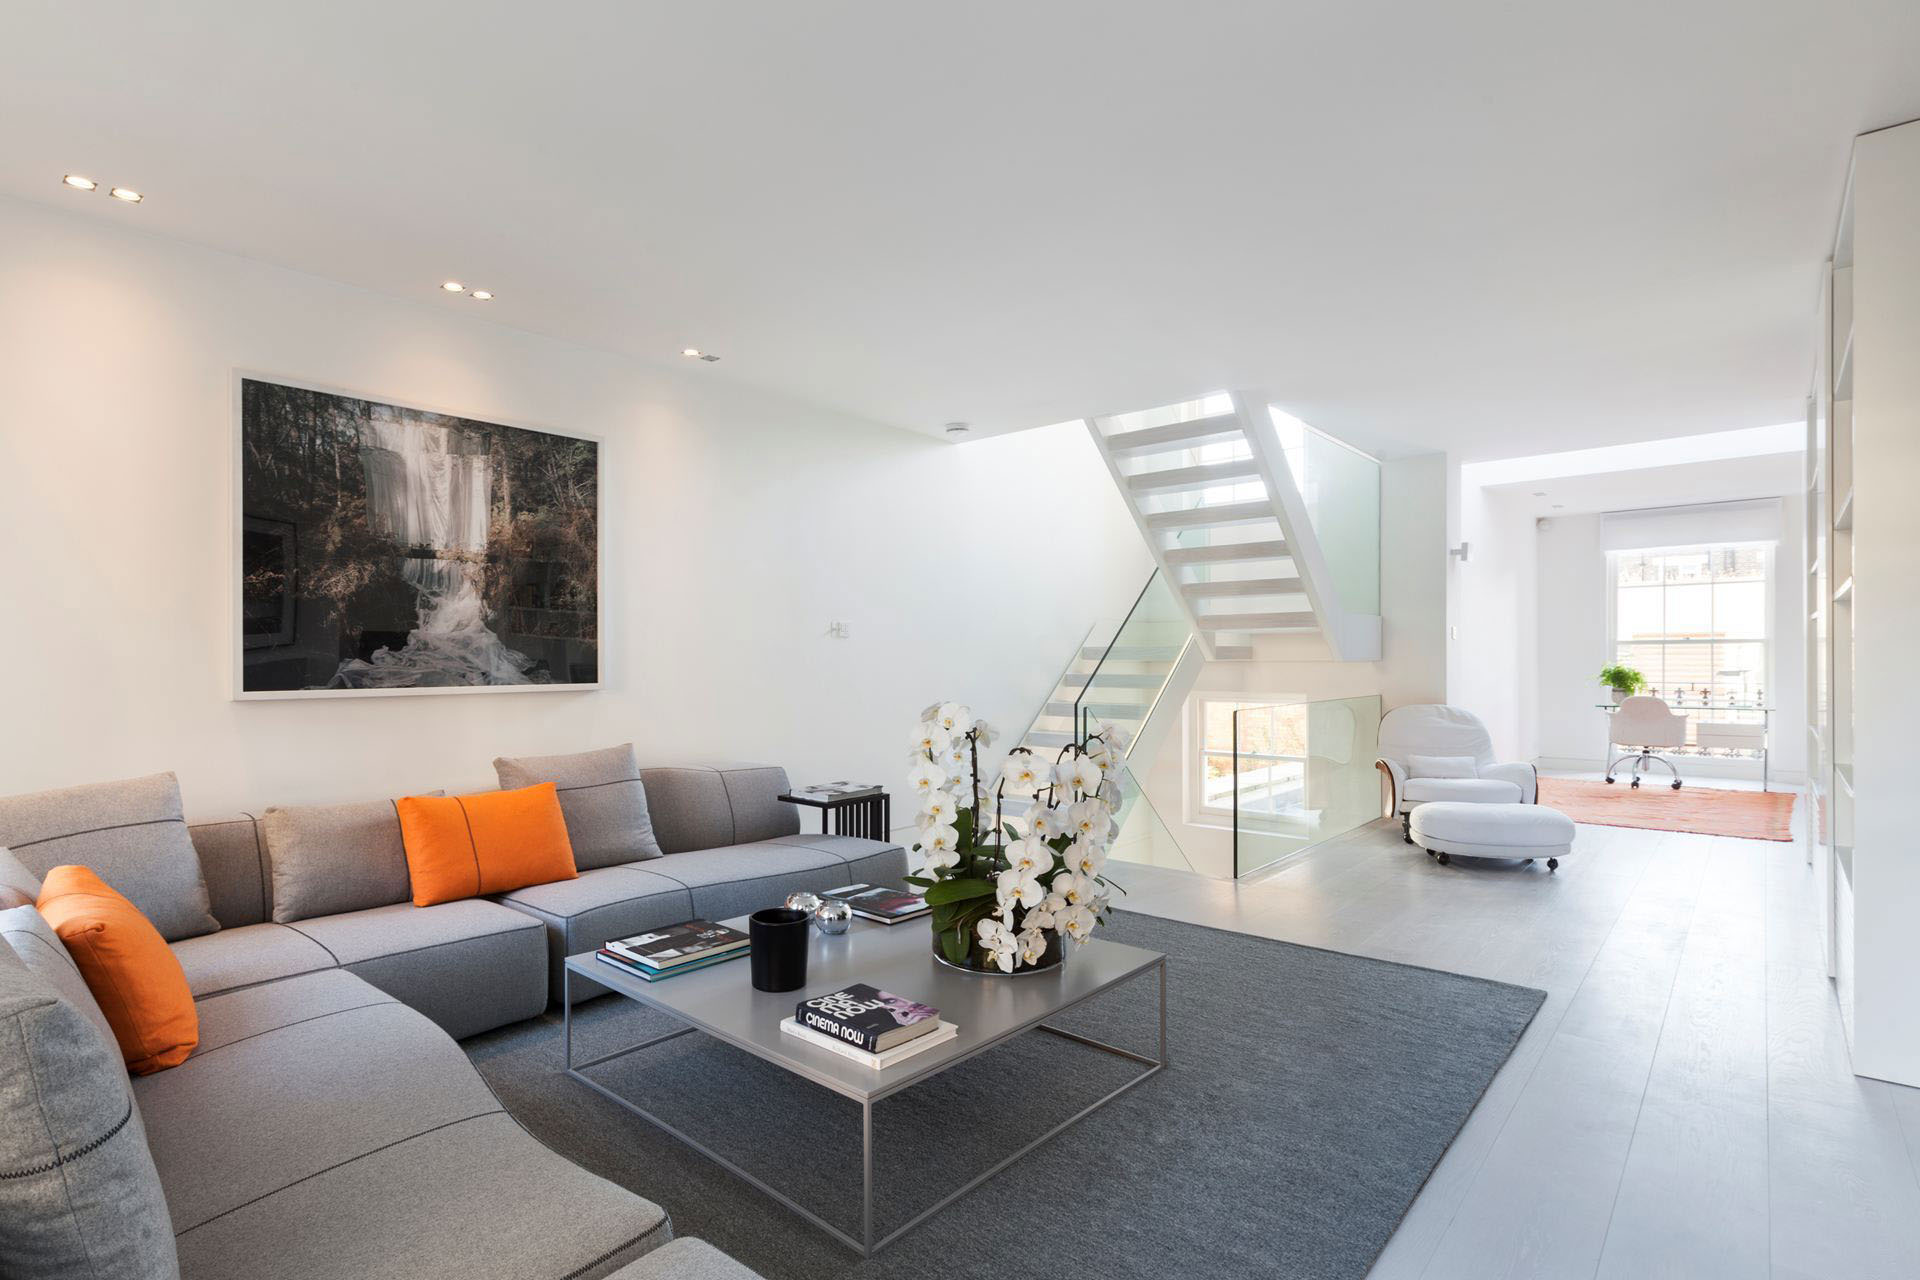 Contemporary House Interior Design Exquisite Contemporary House Near Kensington Gardens